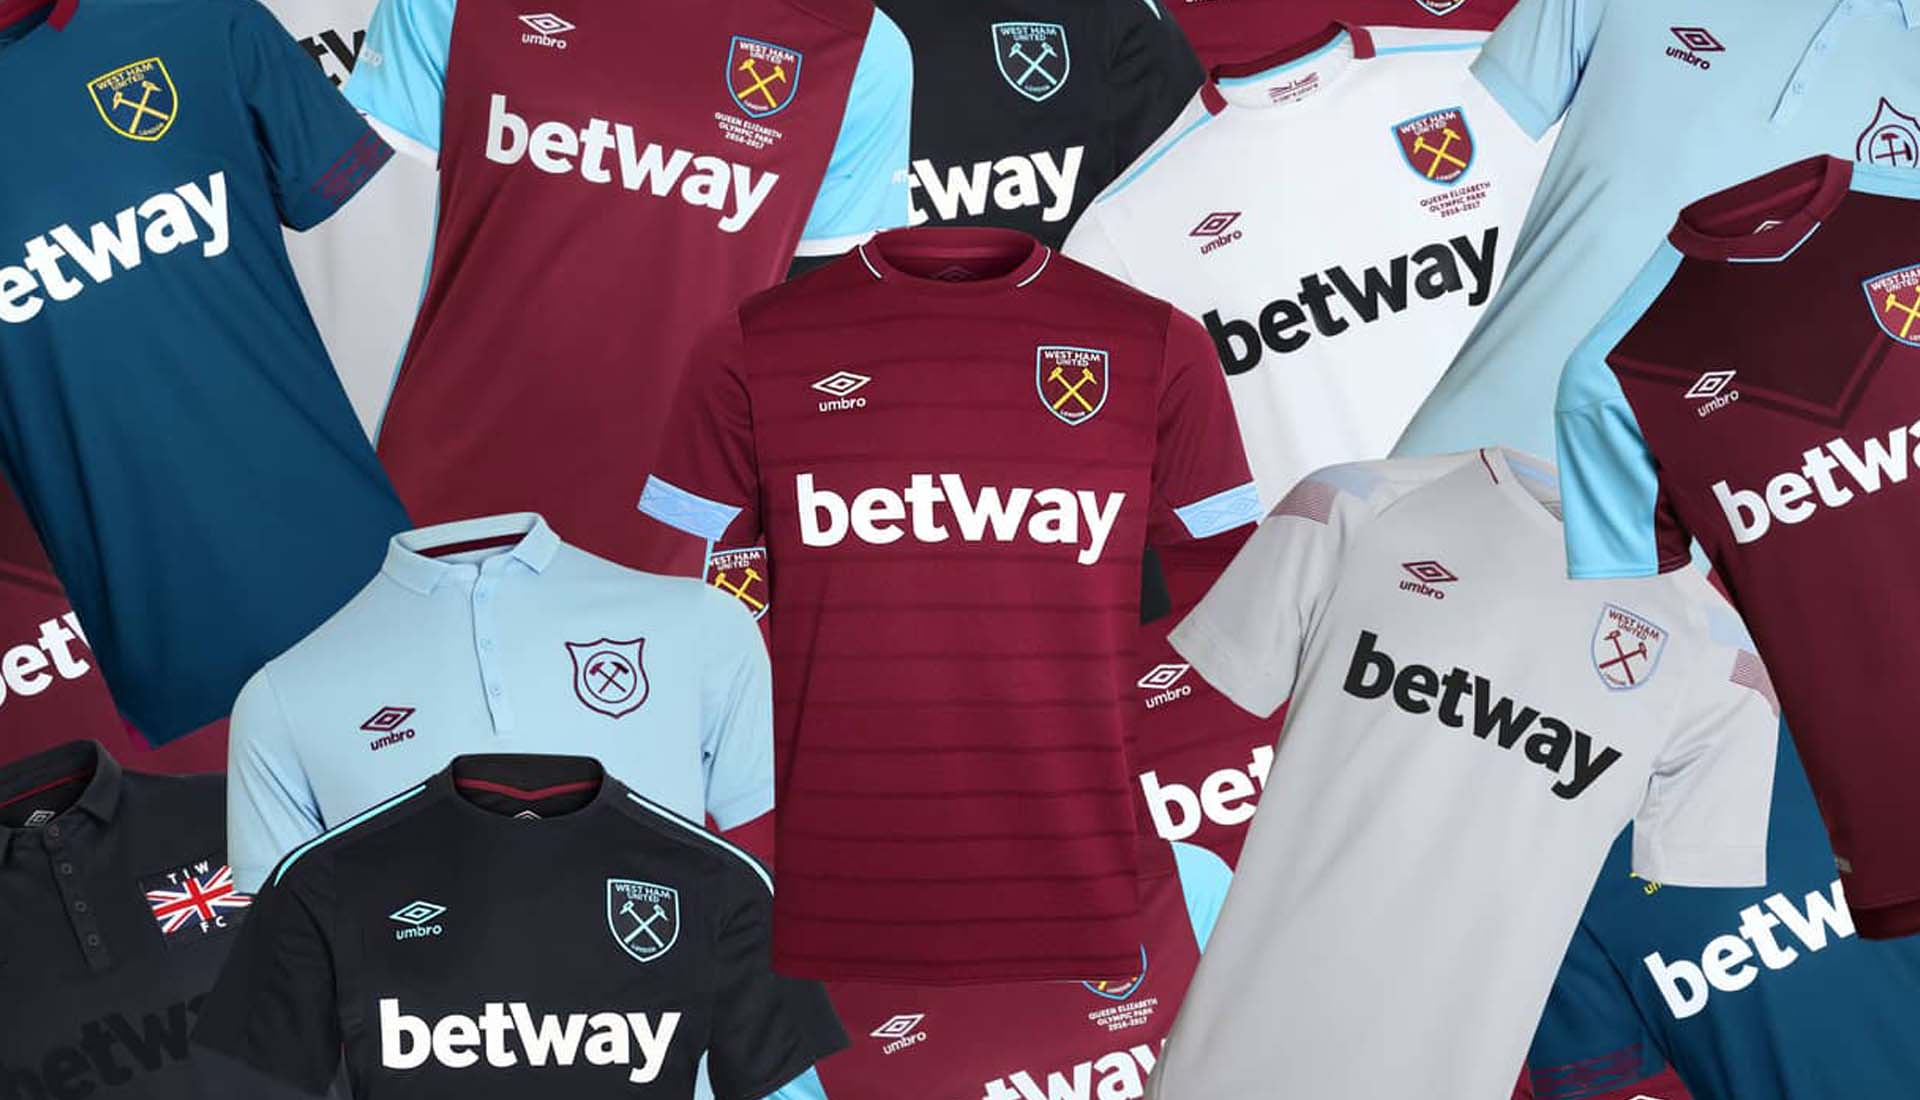 a157a95f0d West Ham Extend Kit Deal With Umbro - SoccerBible